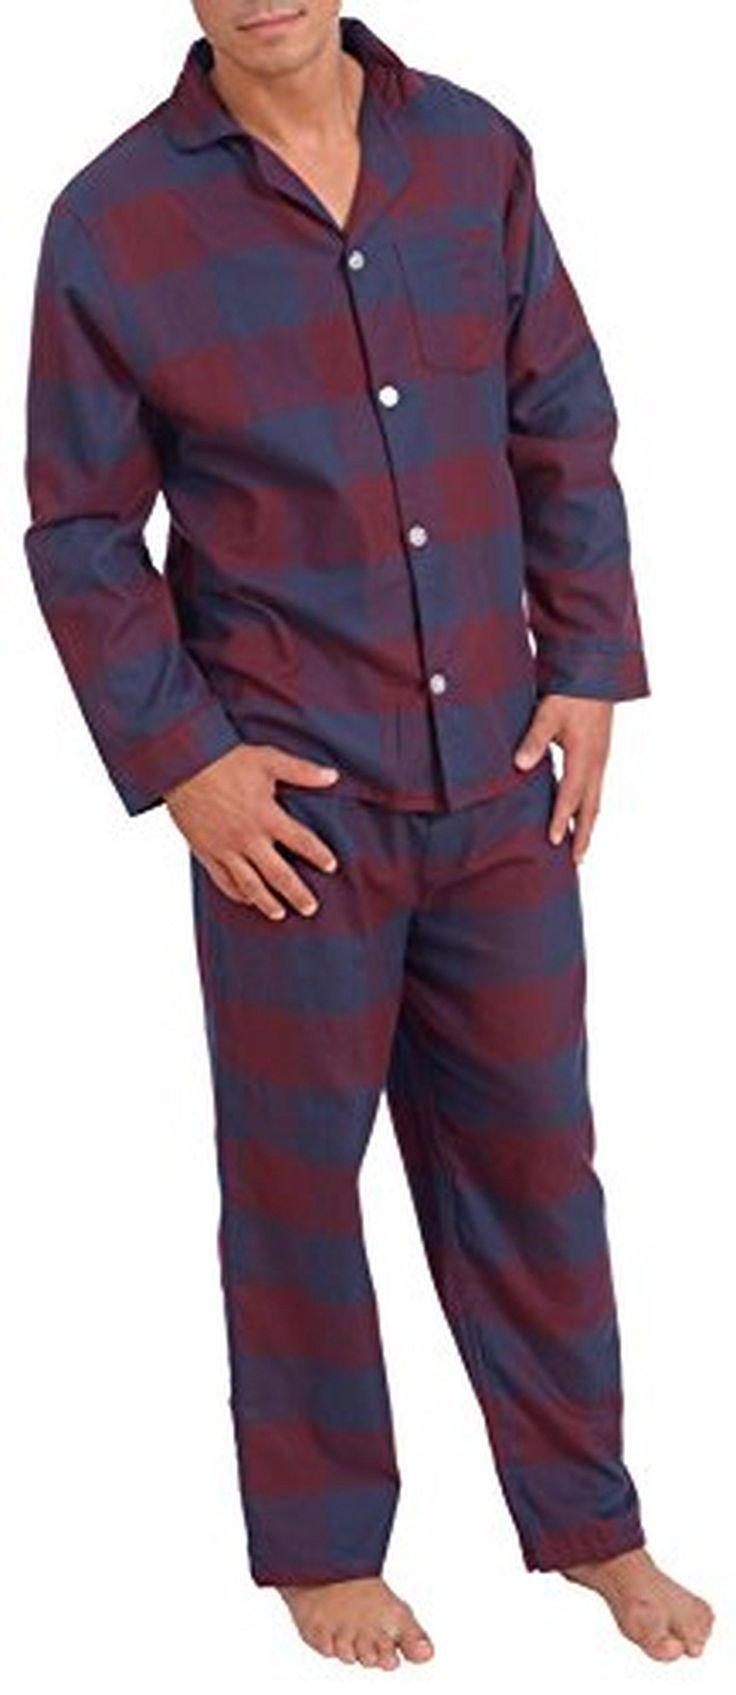 Platinum Men's Flannel Pajama Set Red/Navy Checkered X-Large - Brought to you by Avarsha.com